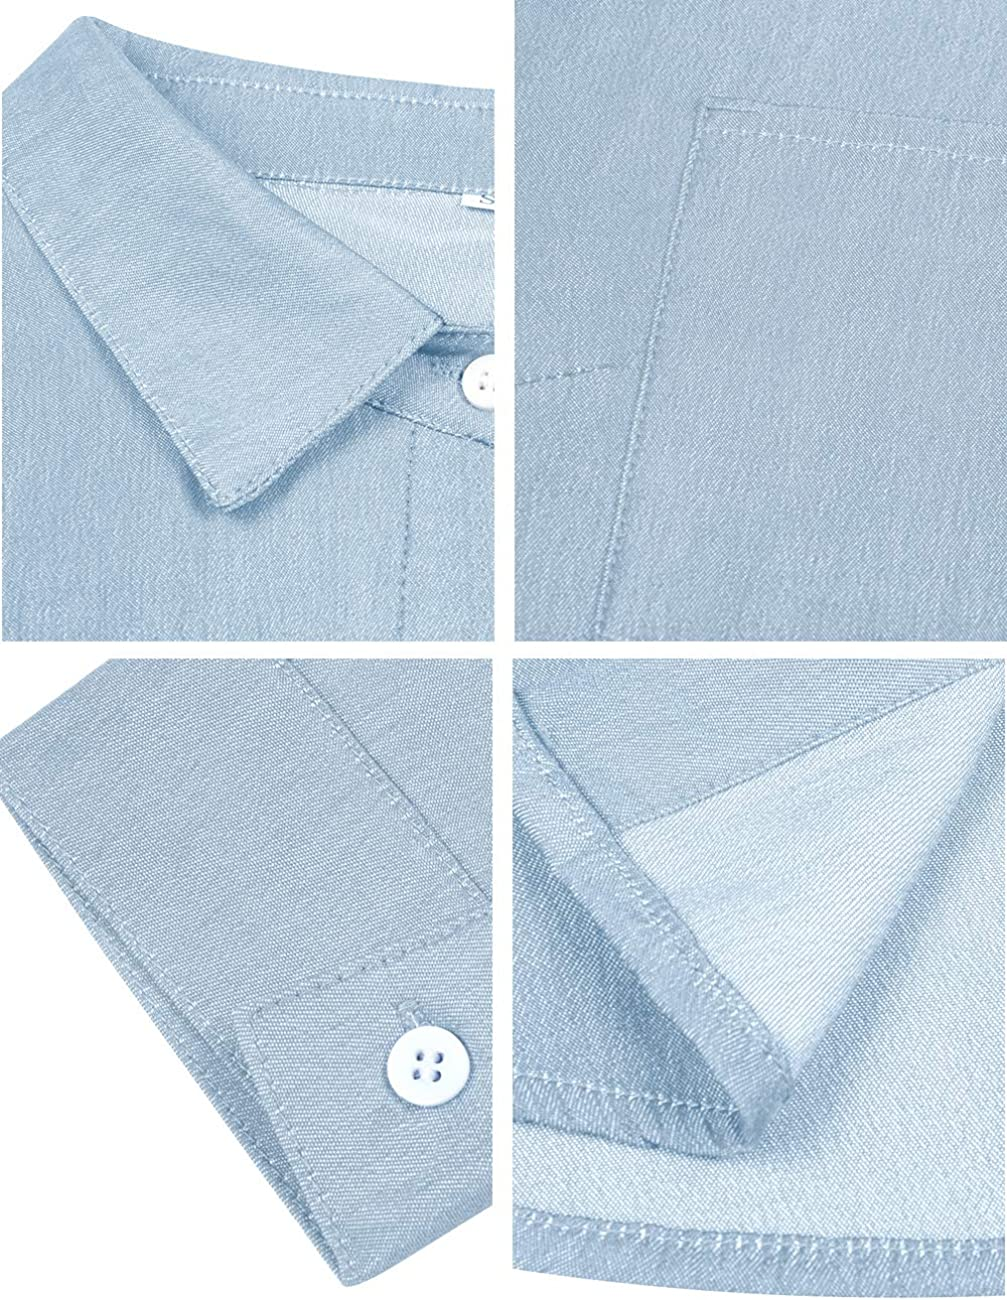 Romanstii Cotton Denim Shirt Women Long Sleeve,Long Sleeve Chambray Button Down Jeans Shirts for Casual and Work